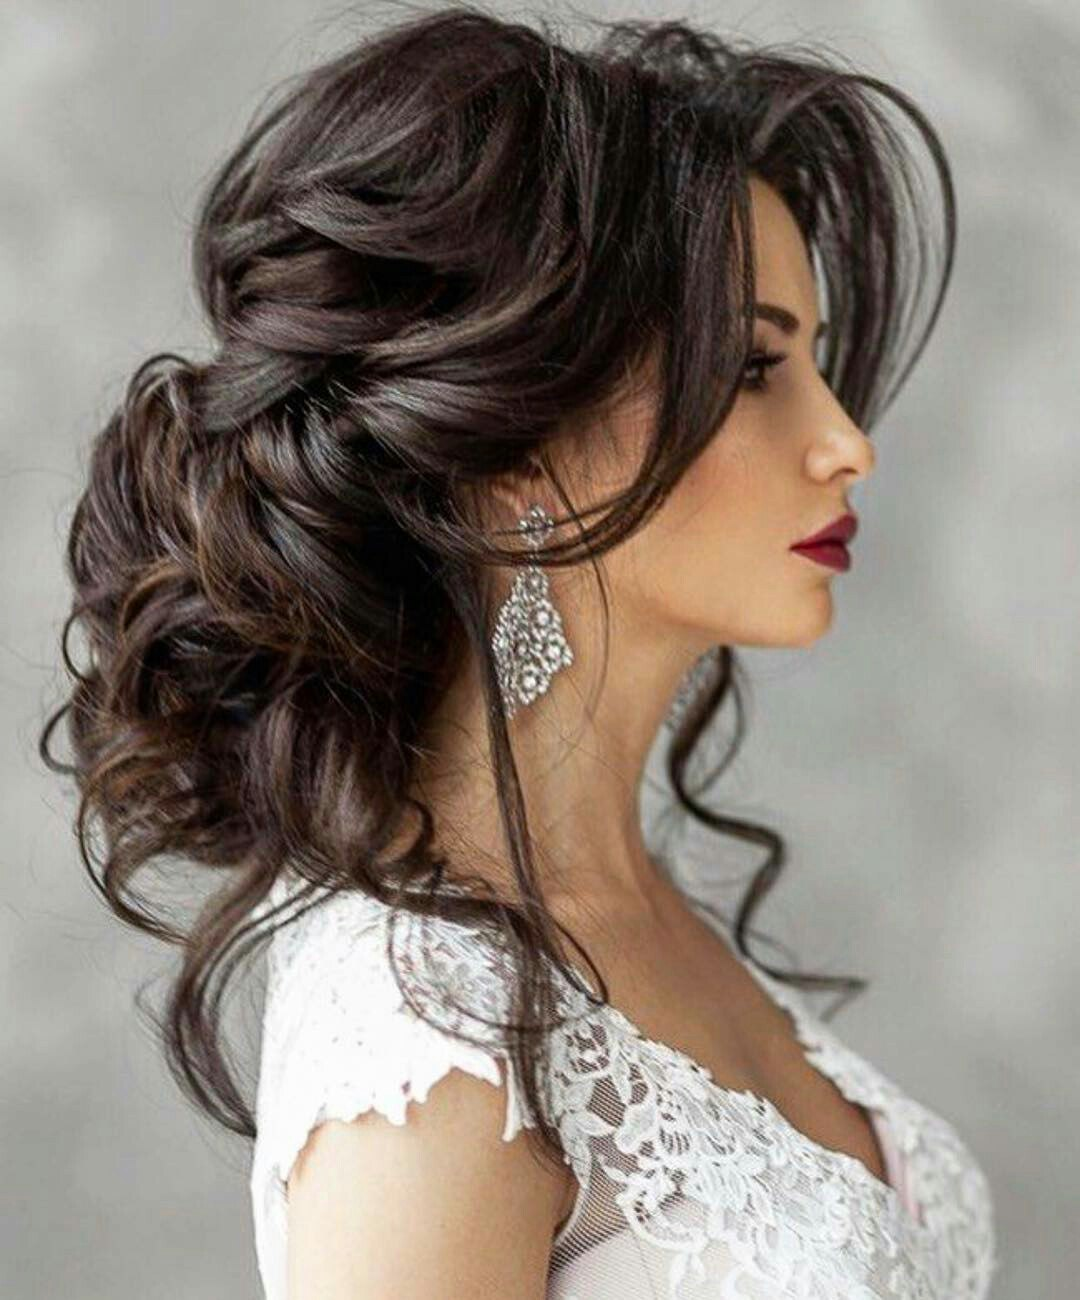 Wedding Hairstyles Photos: Greek Hairstyles: Grecian Hairstyle Ideas For Women